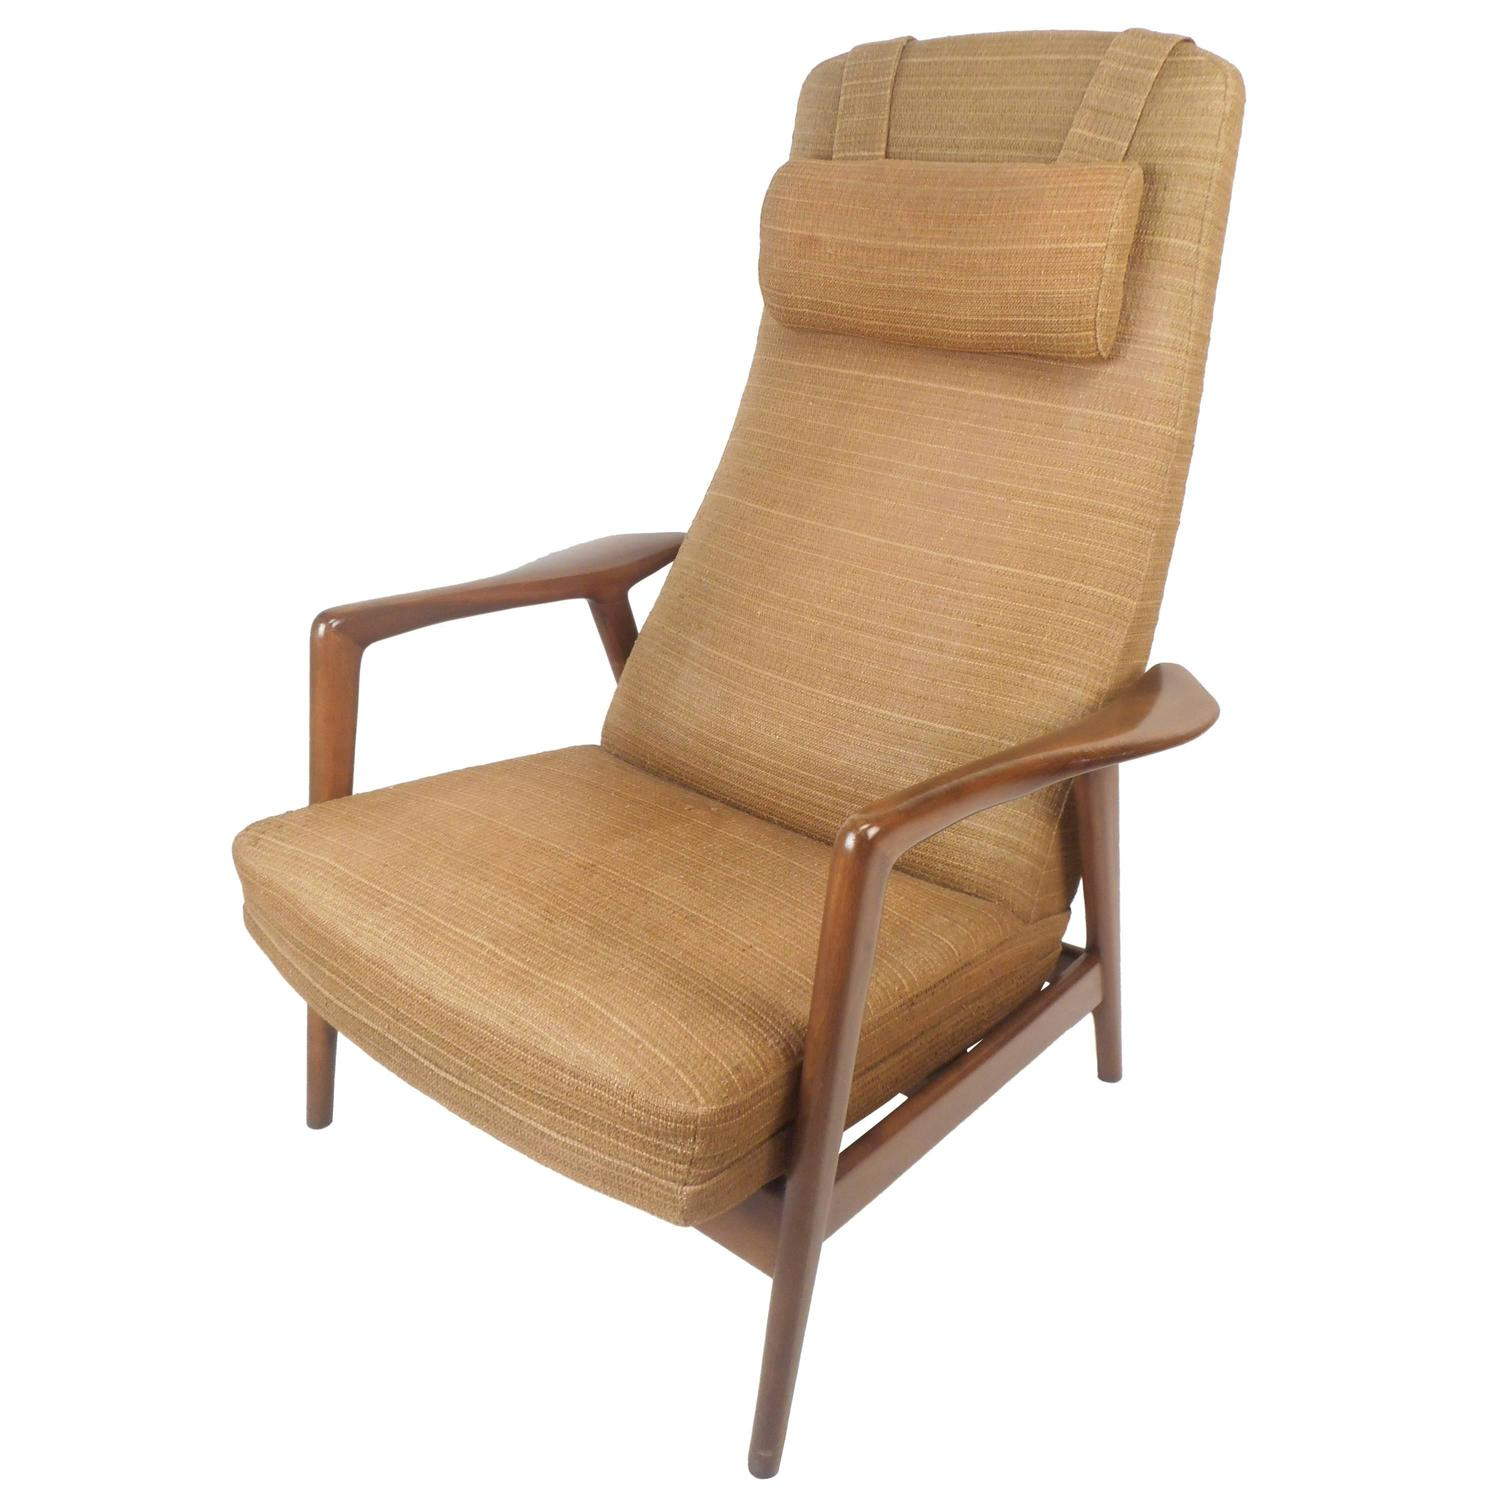 Mid-Century Modern Folke Ohlsson DUX Reclining Lounge Chair For Sale at 1stdibs  sc 1 st  1stDibs & Mid-Century Modern Folke Ohlsson DUX Reclining Lounge Chair For Sale ...